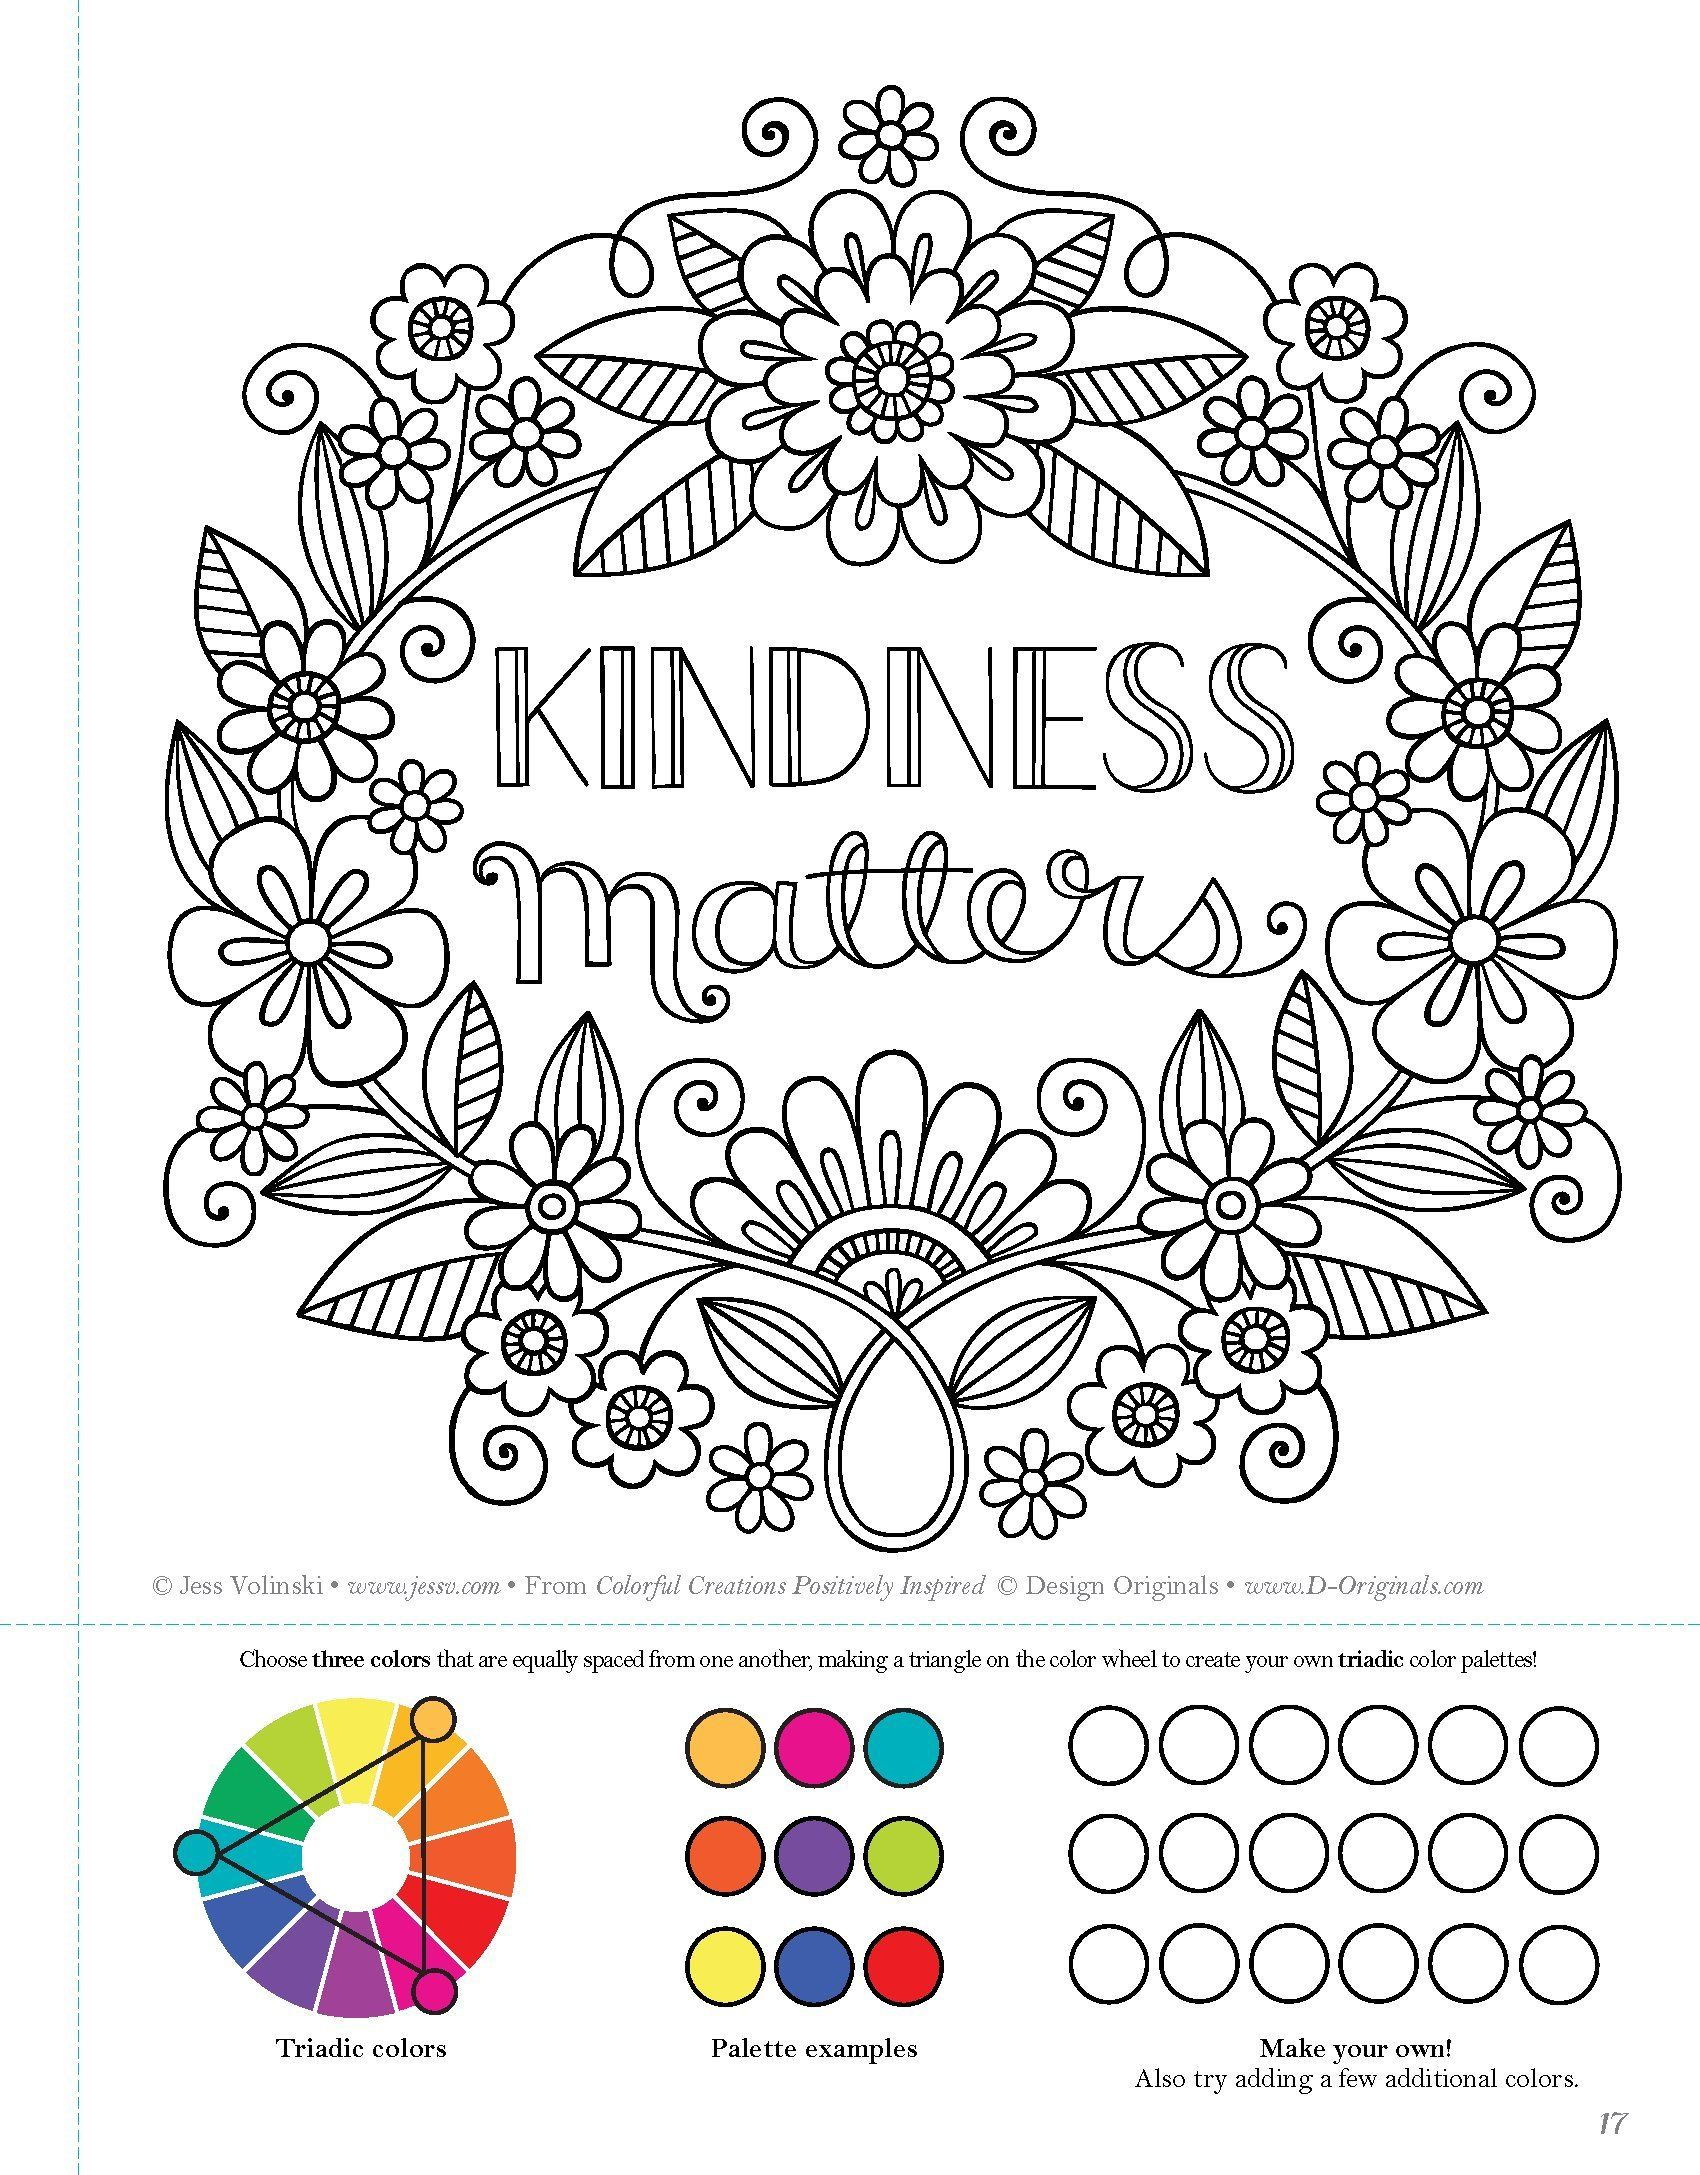 Amazon Com Colorful Creations Positively Inspired Coloring Book Coloring Book Pages Designed To Inspi Coloring Book Pages Coloring Books Quote Coloring Pages